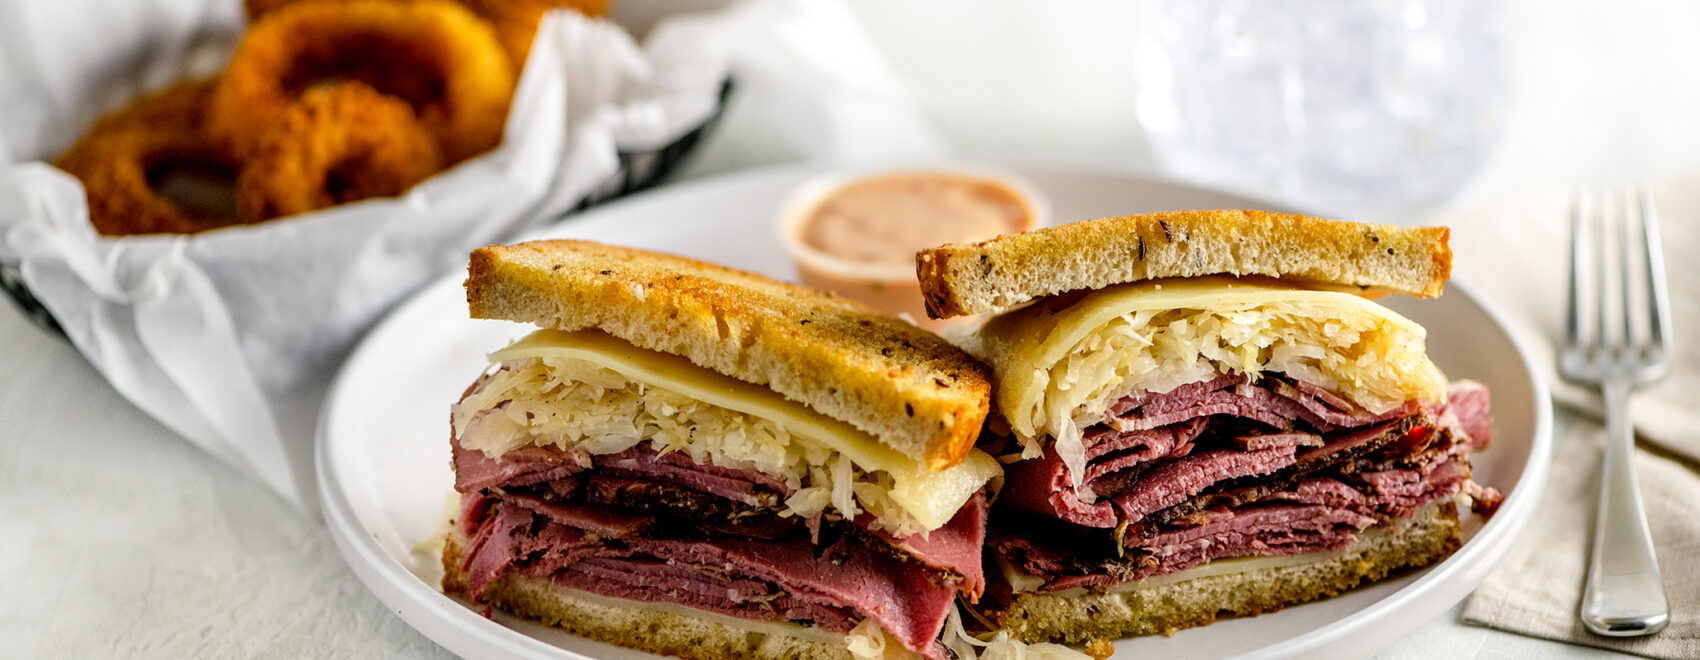 NY pastrami reuben with sauerkraut on rye bread and melted swiss cheese on a white plate. Large order of jumbo crispy onion rings as a side.